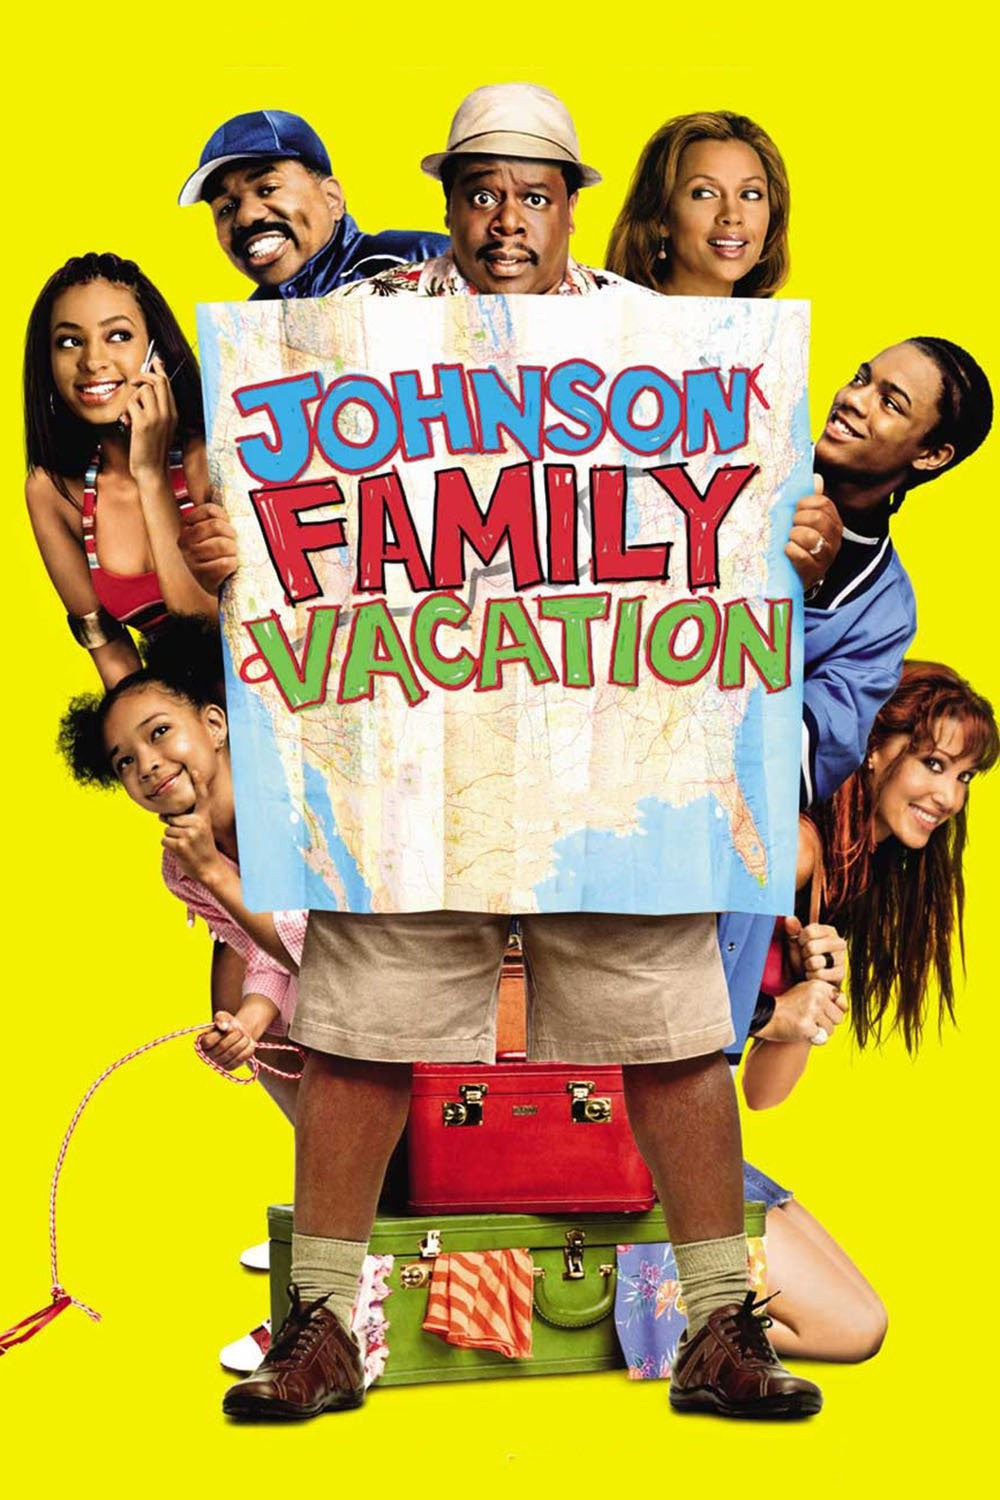 Watch Johnson Family Vacation (2004) Free Online